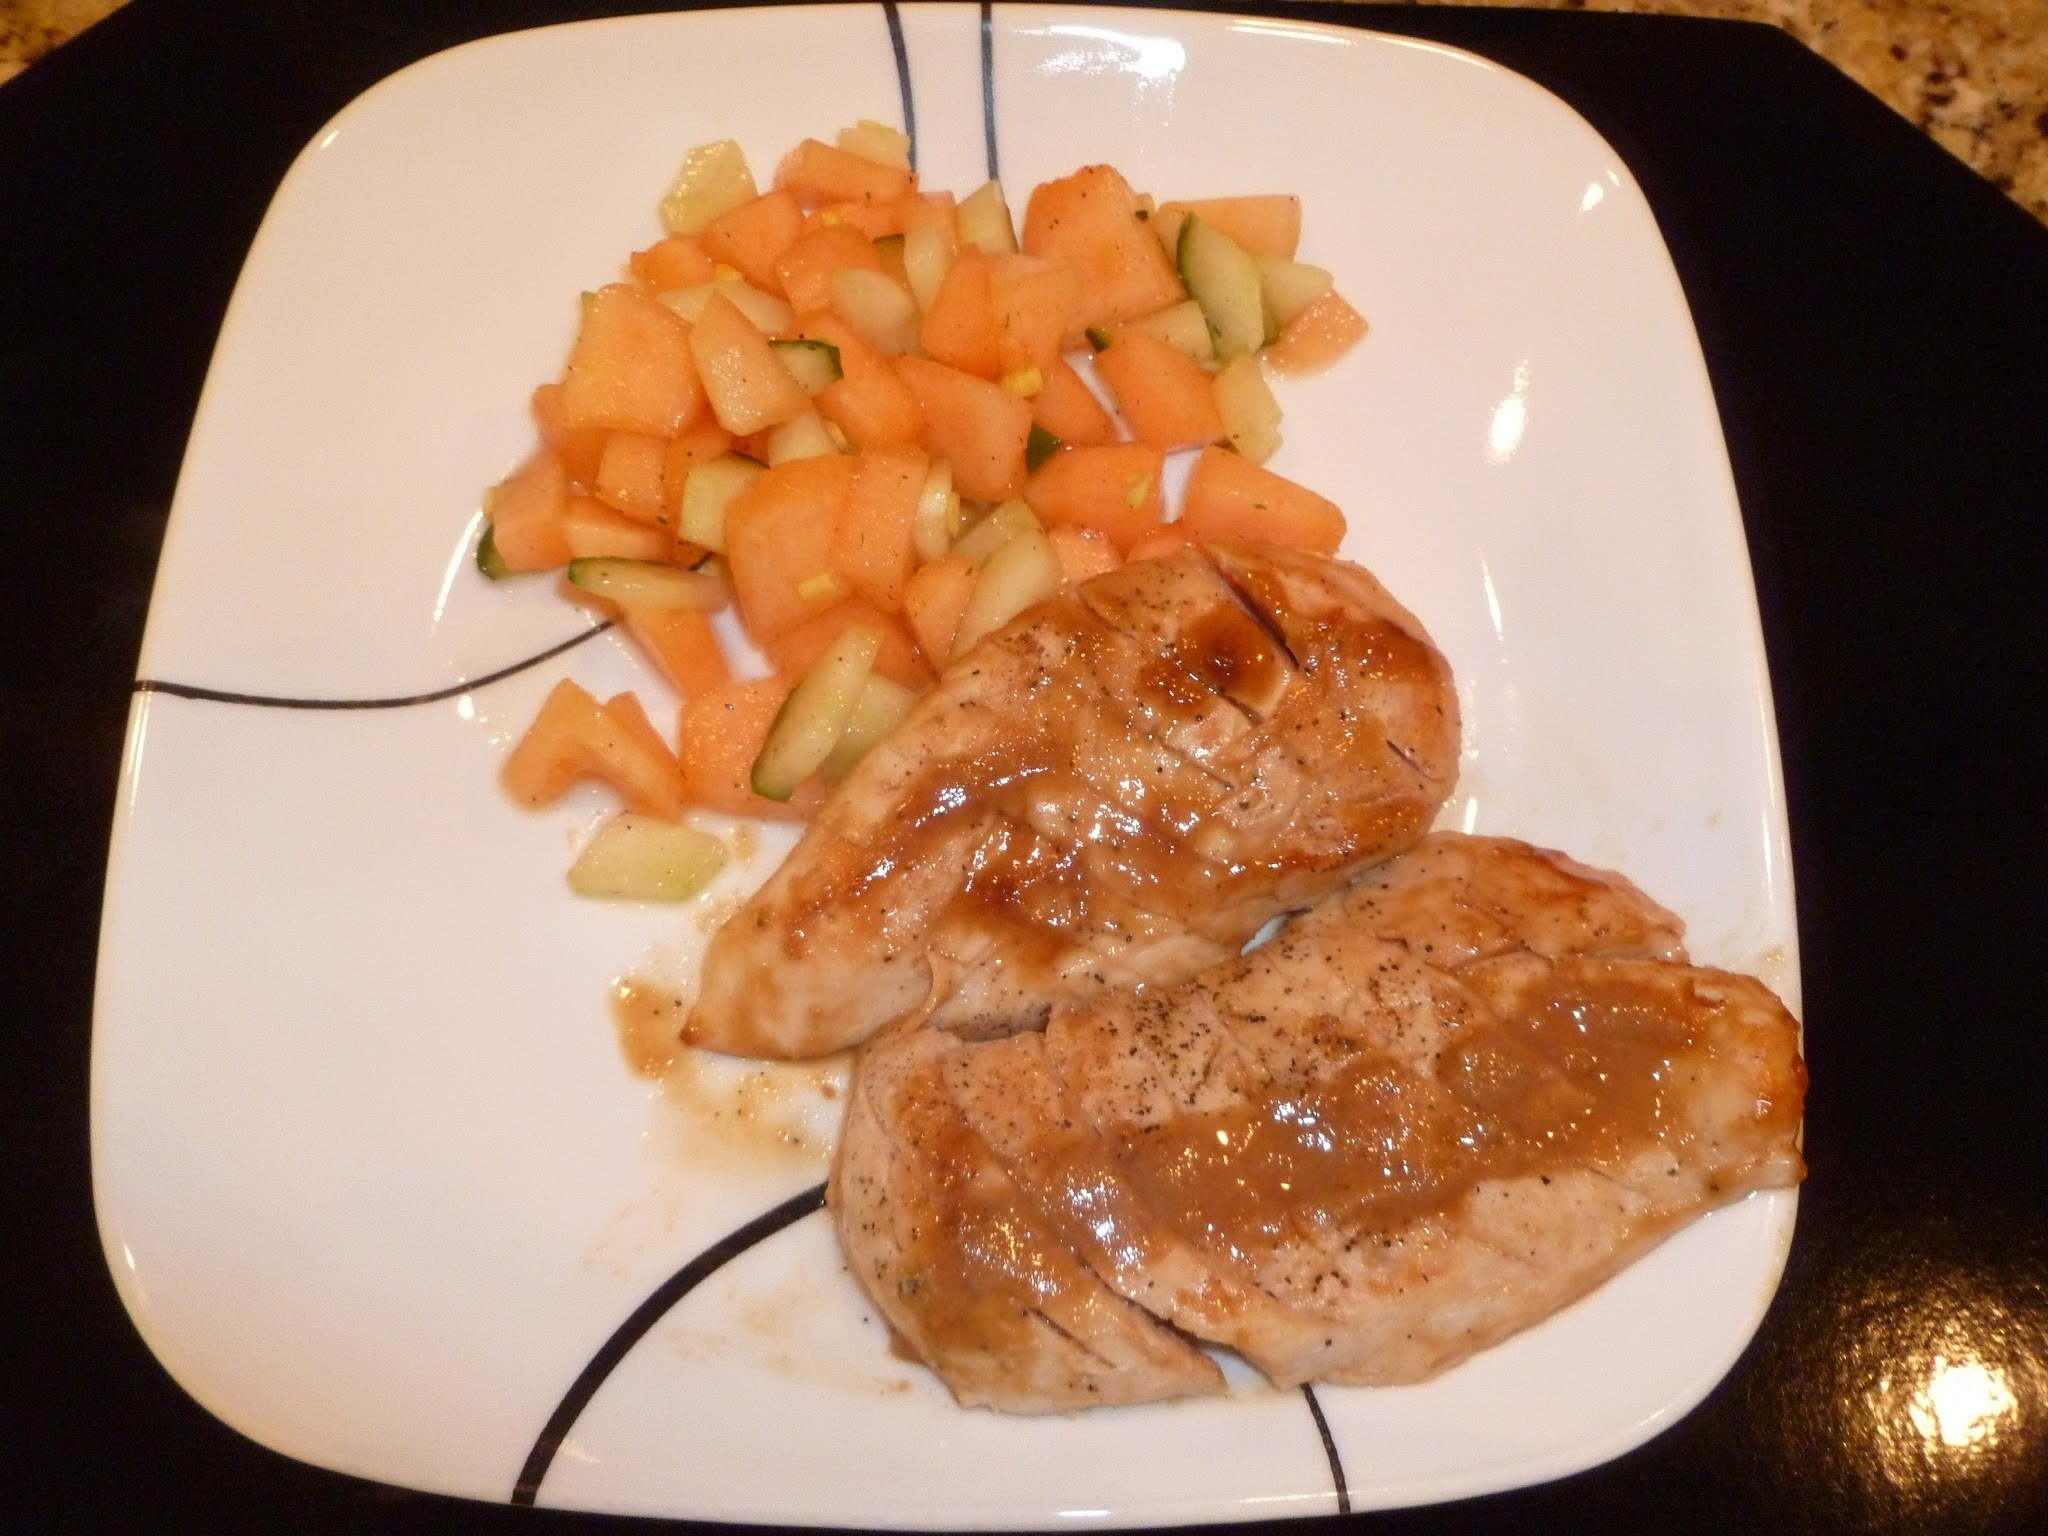 Grilled chicken with cucumber/melon relish and peanut sauce